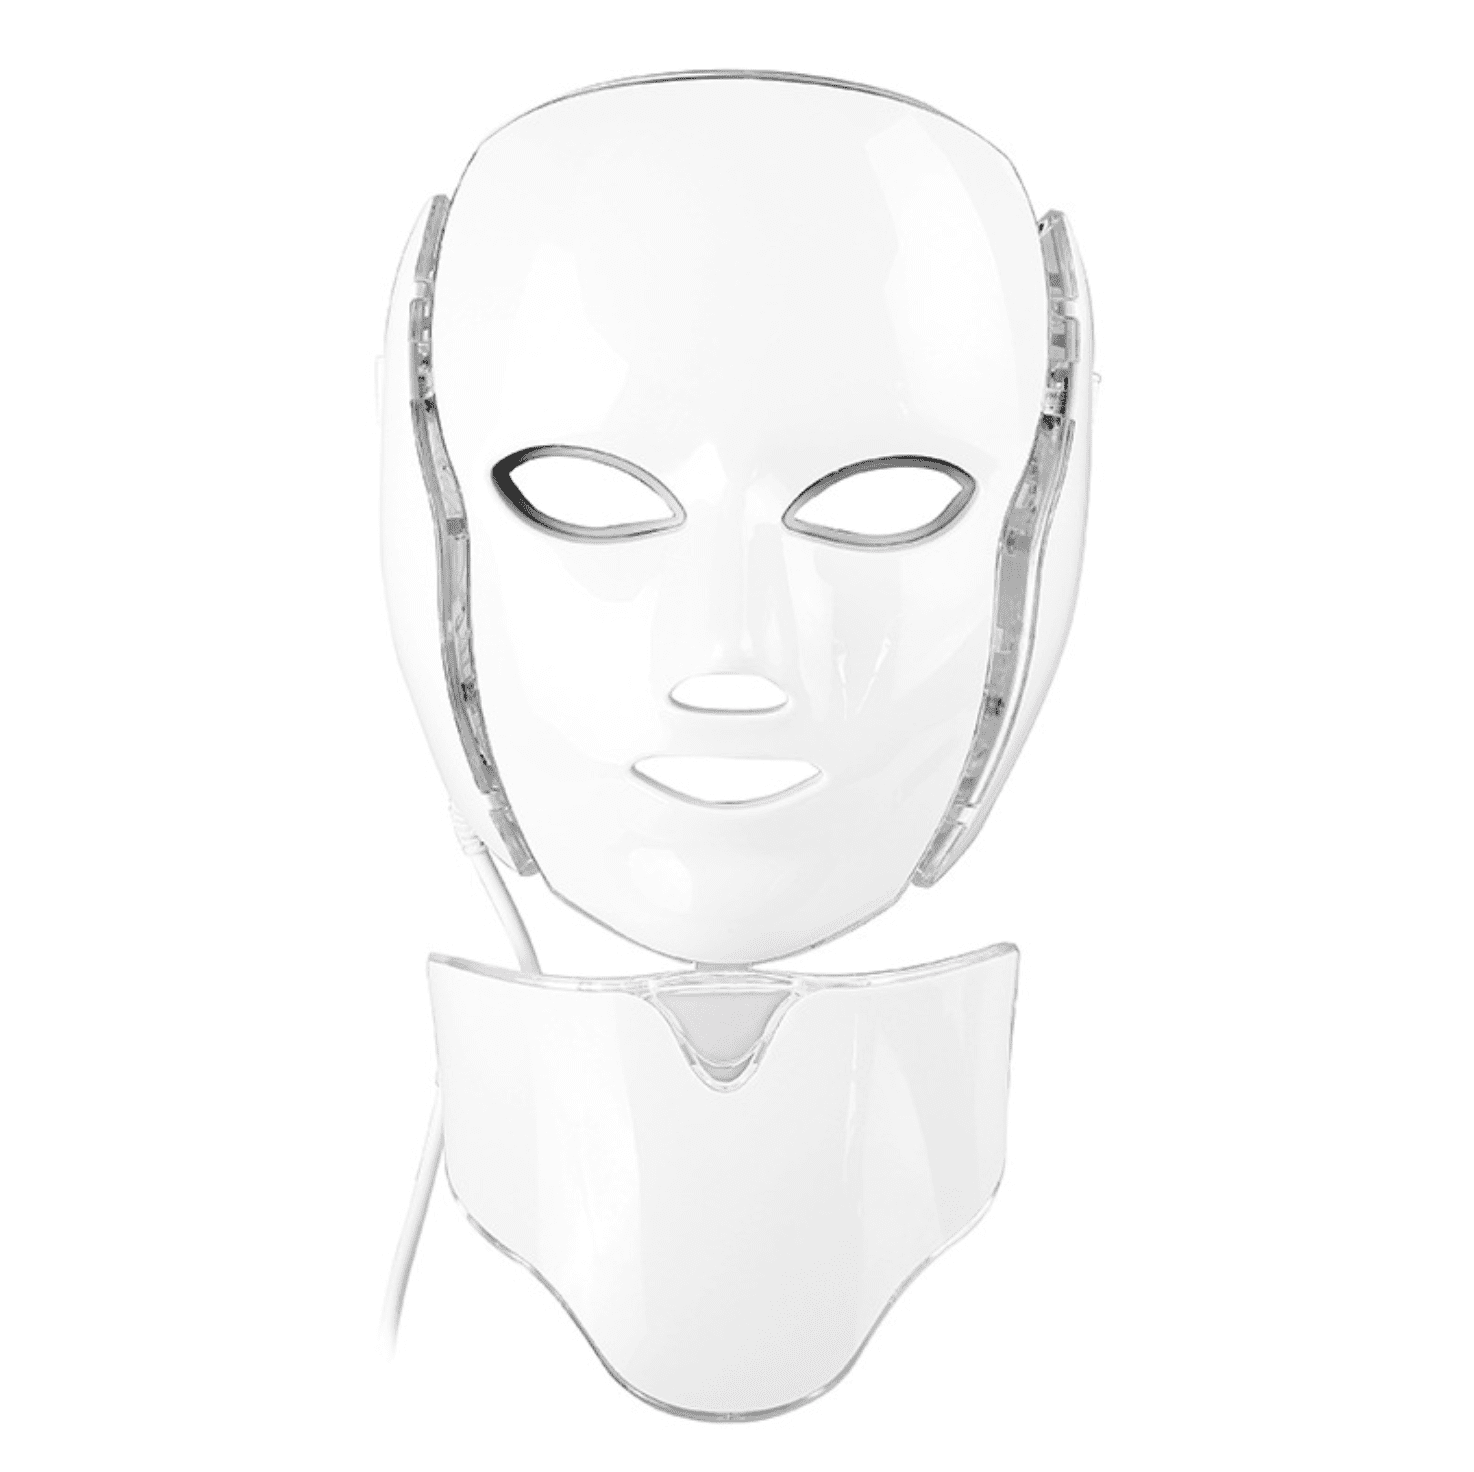 7 Color Professional Facial LED Mask with Neck - Clinically Proven Photon Treatment,  Light Therapy Mask For Acne, Wrinkles, and Dull Skin